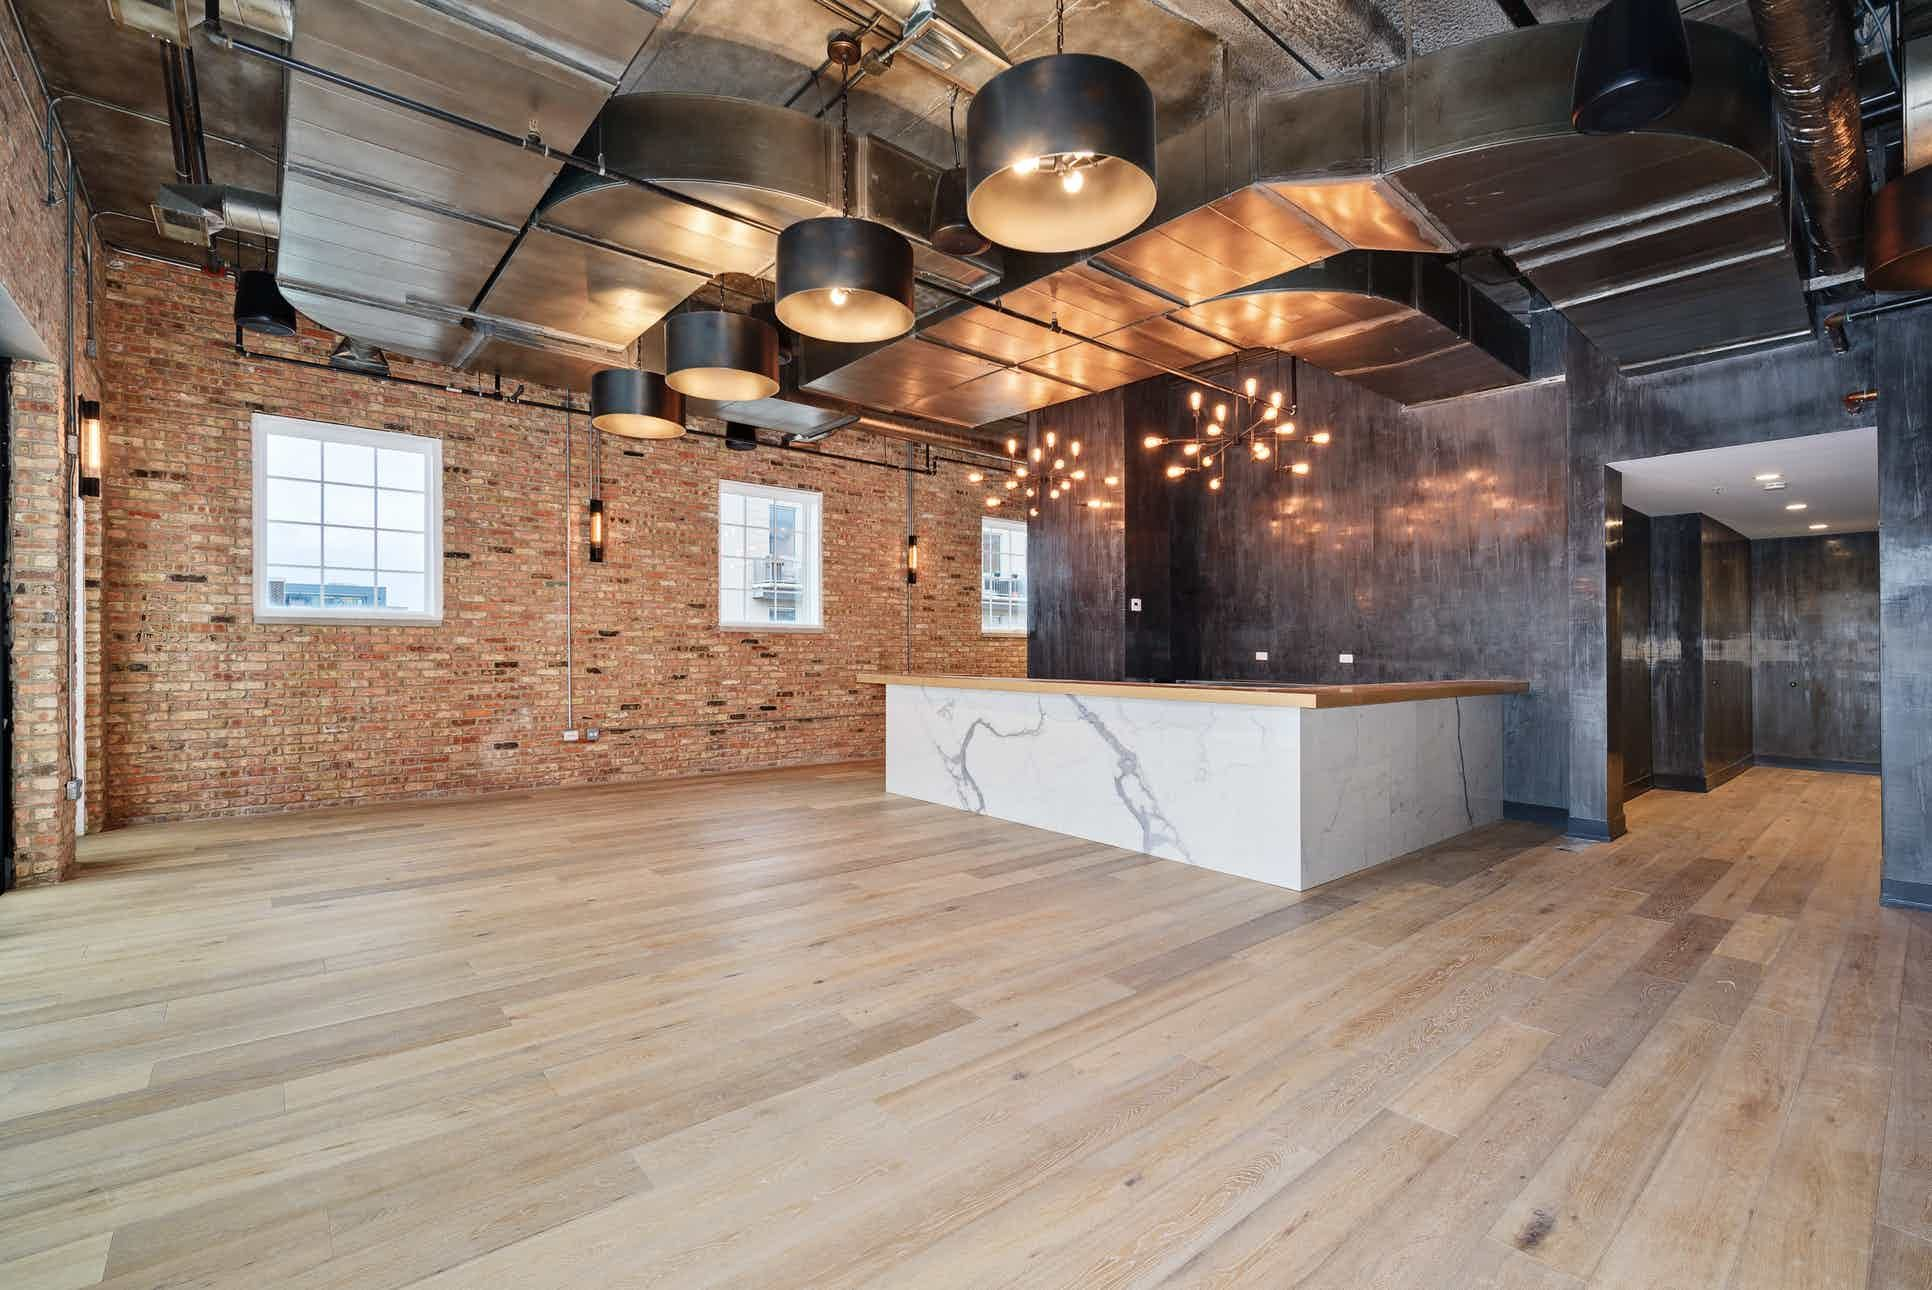 See Loft Lucia A Beautiful Downtown Chicago Wedding Venue Find Prices Detailed Info And Photos For Illino Event Space Design Event Venue Design Event Space